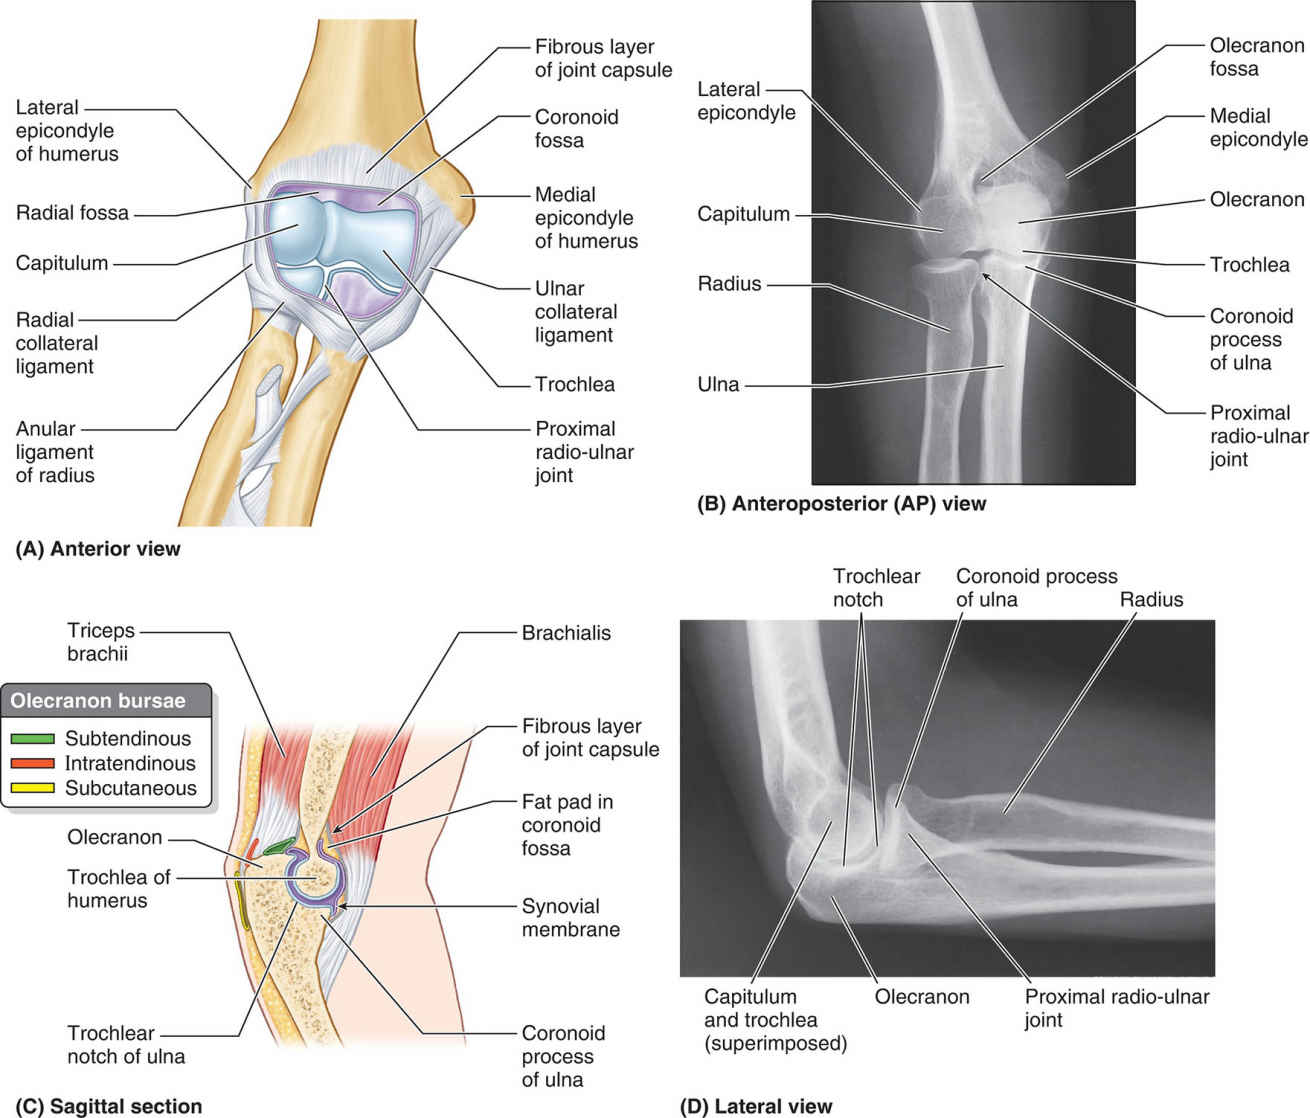 Elbow And Proximal Radio-ulnar Joints